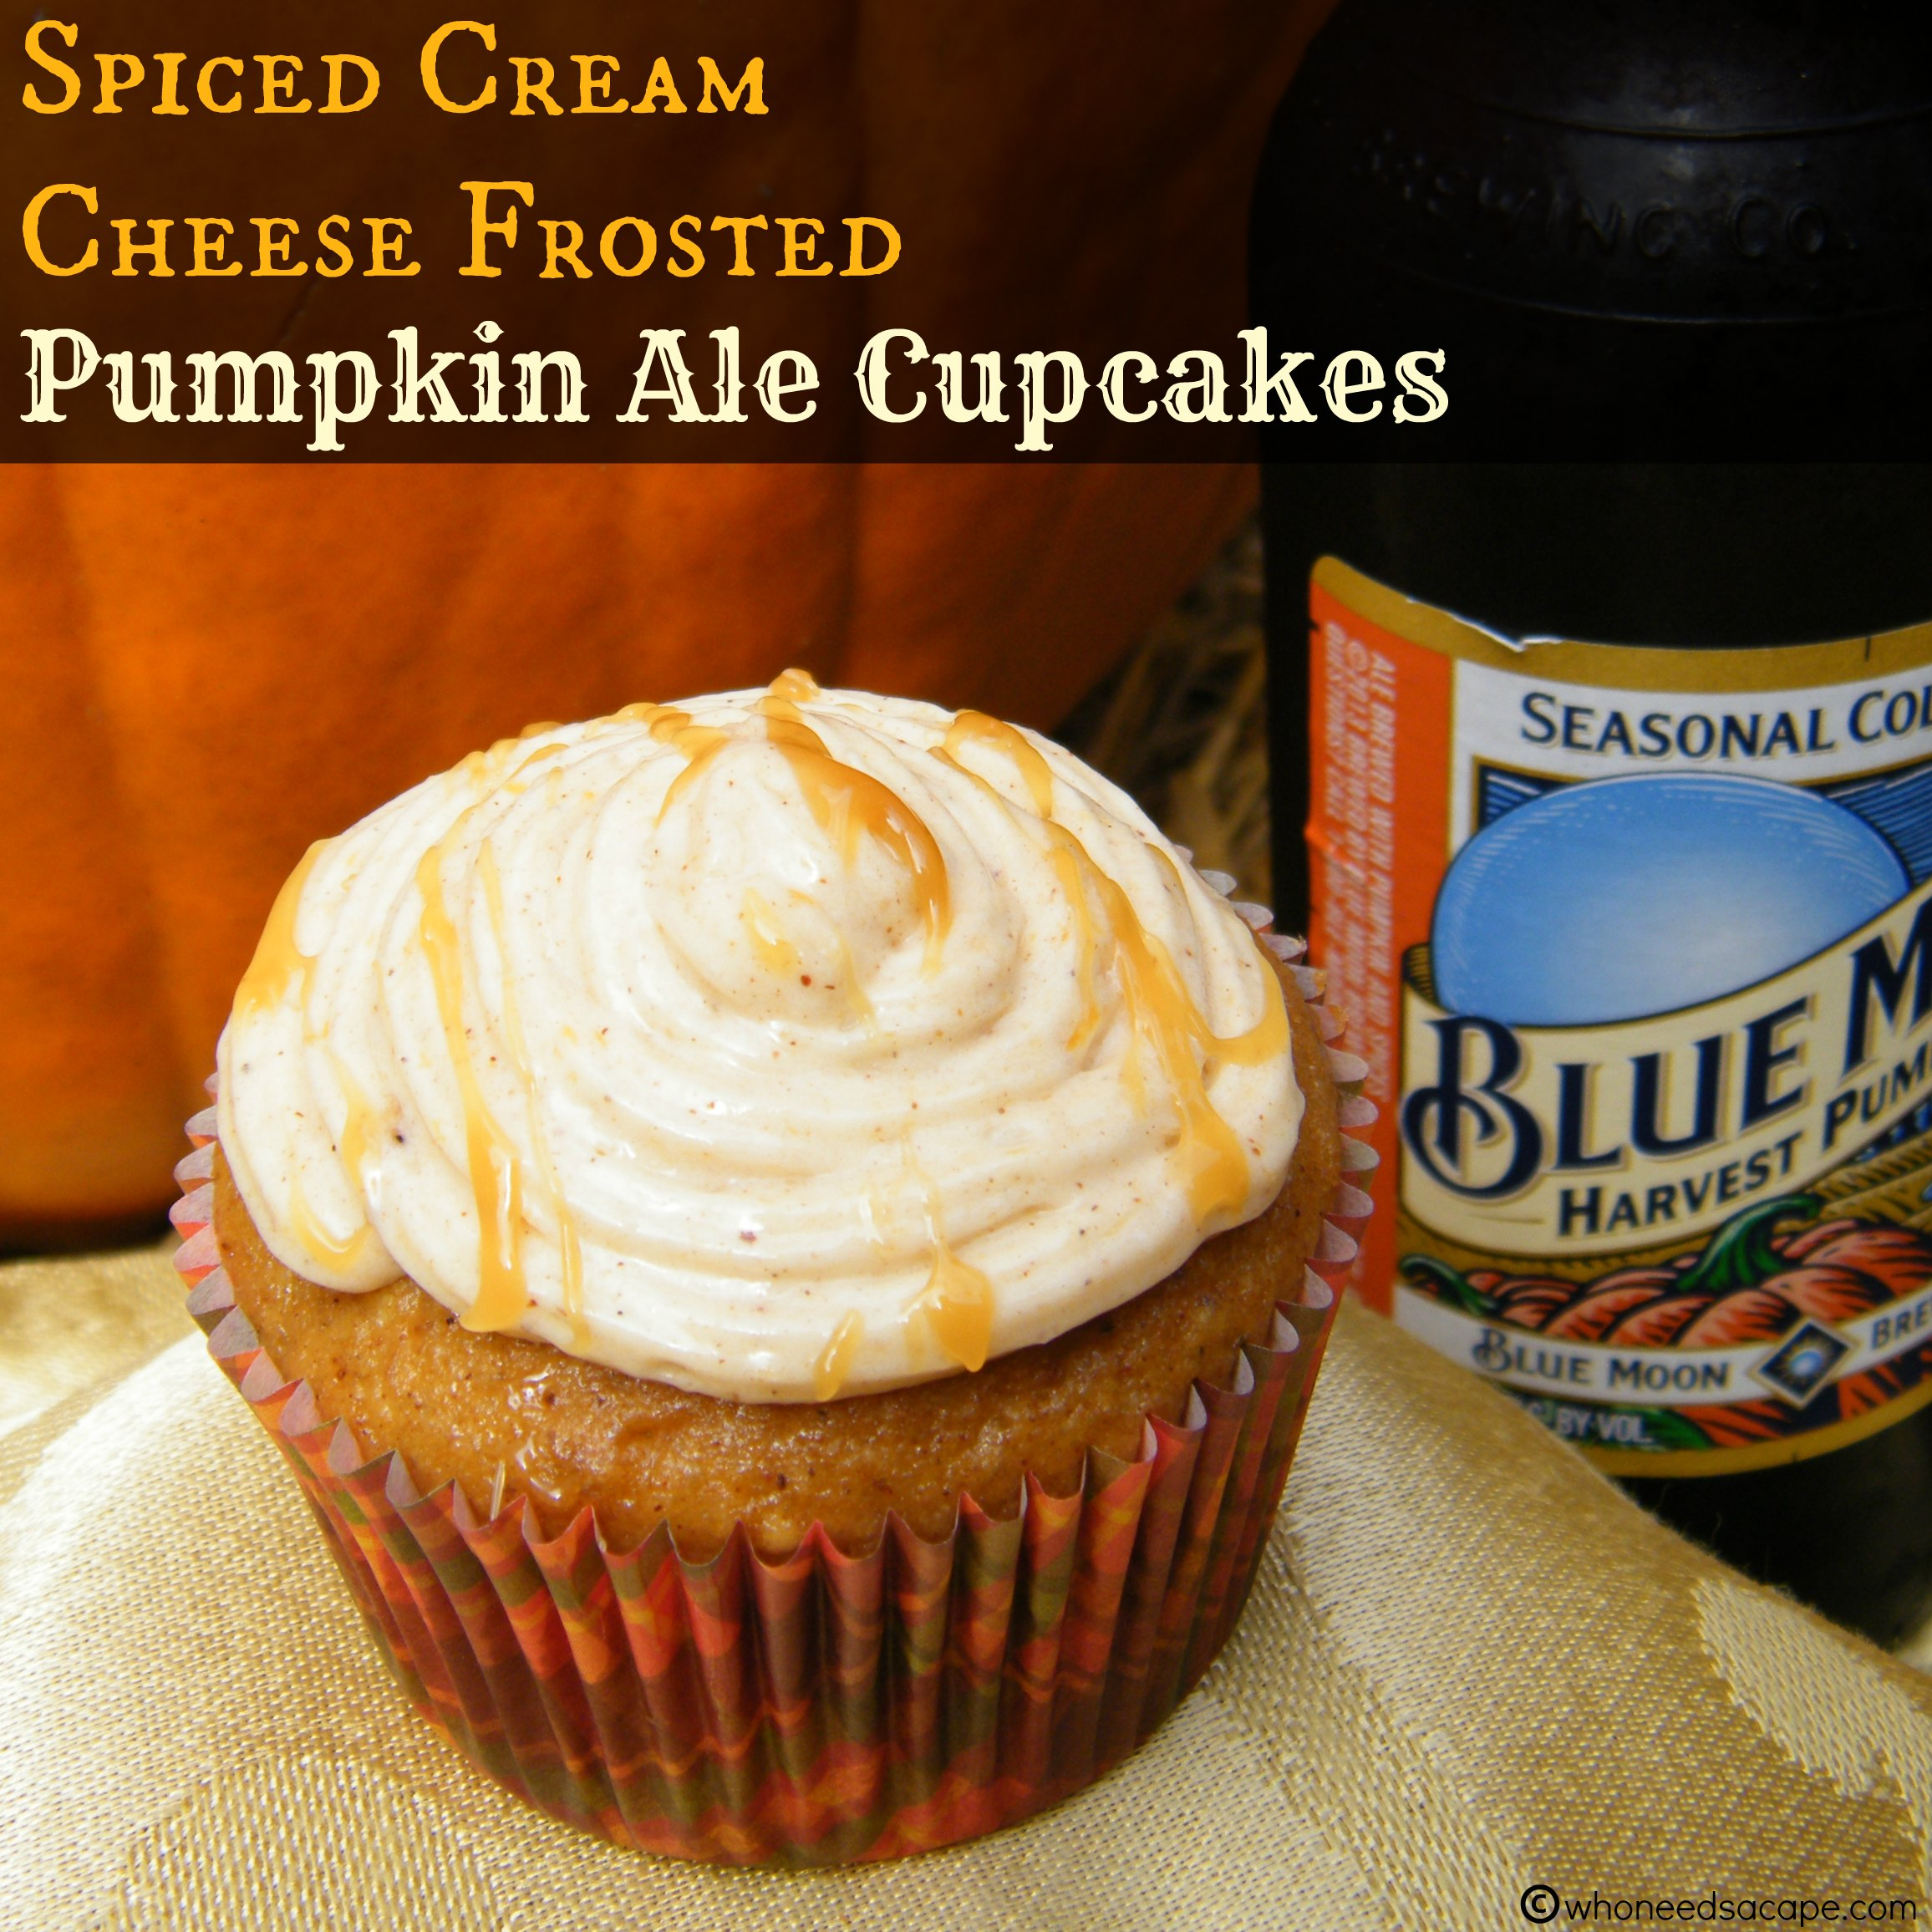 Spiced Cream Cheese Frosted Pumpkin Ale Cupcakes - Who Needs A Cape?